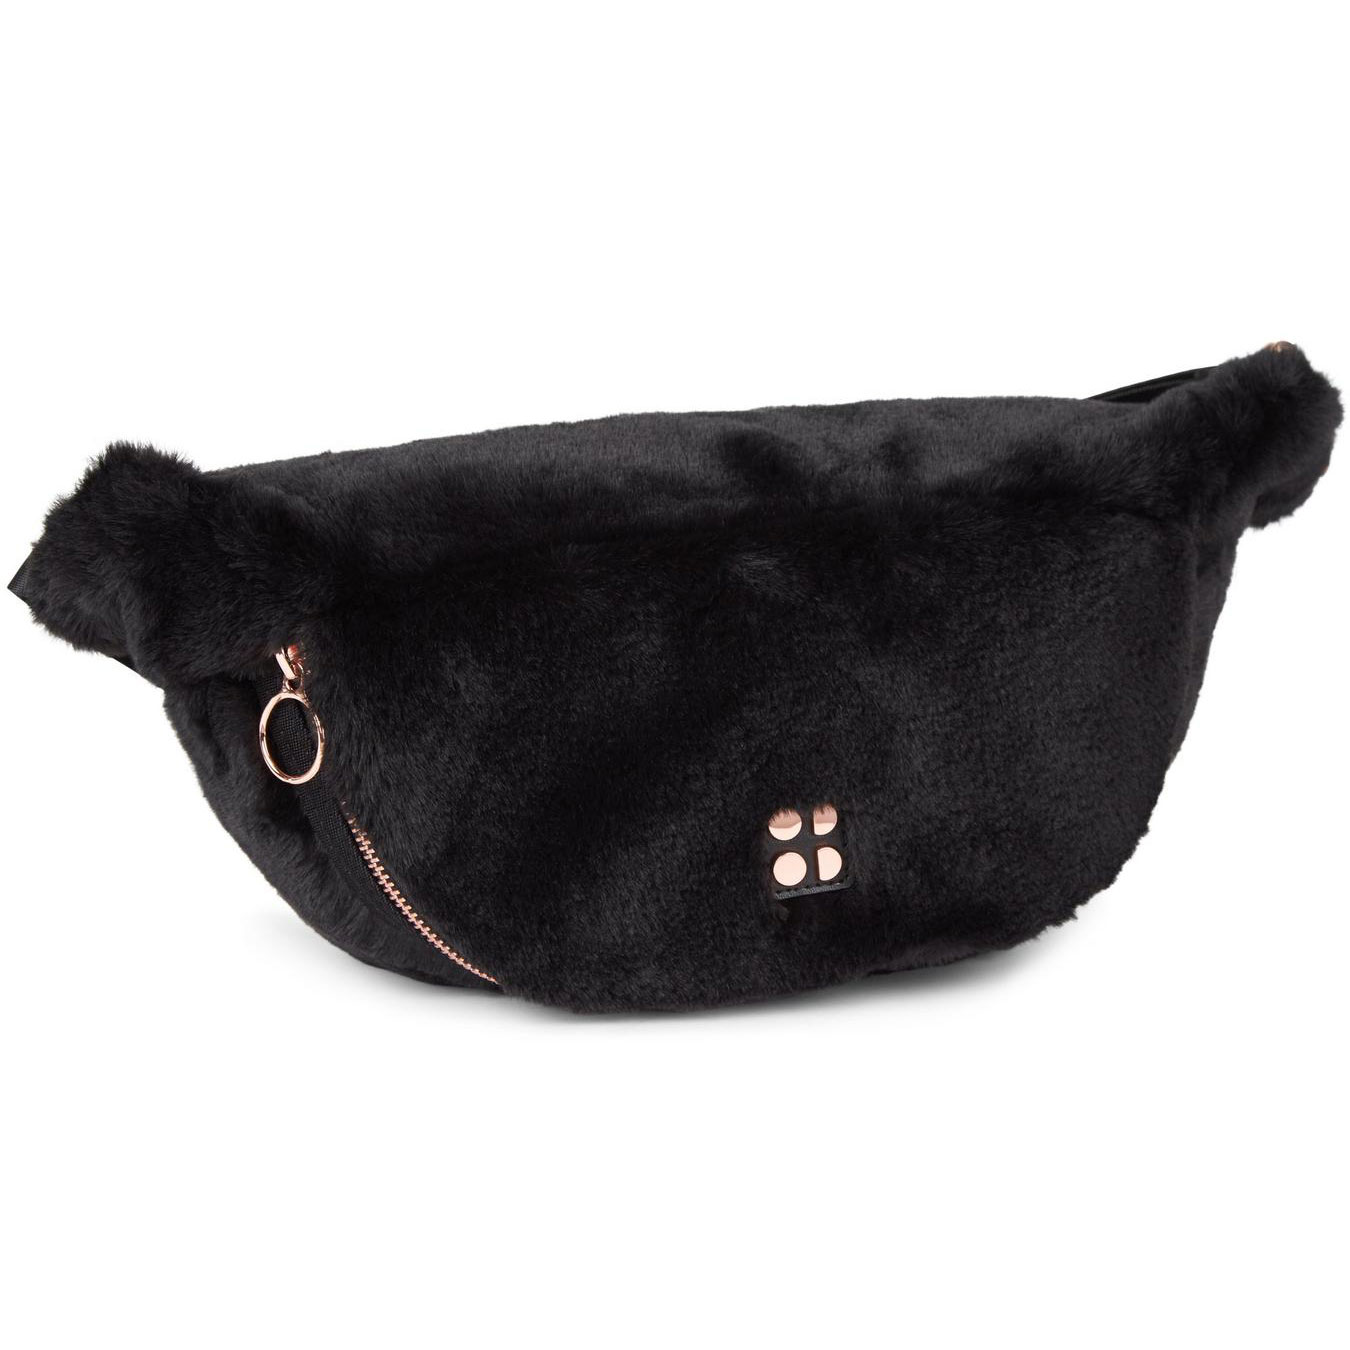 Sweaty Betty Fur Bum Bag